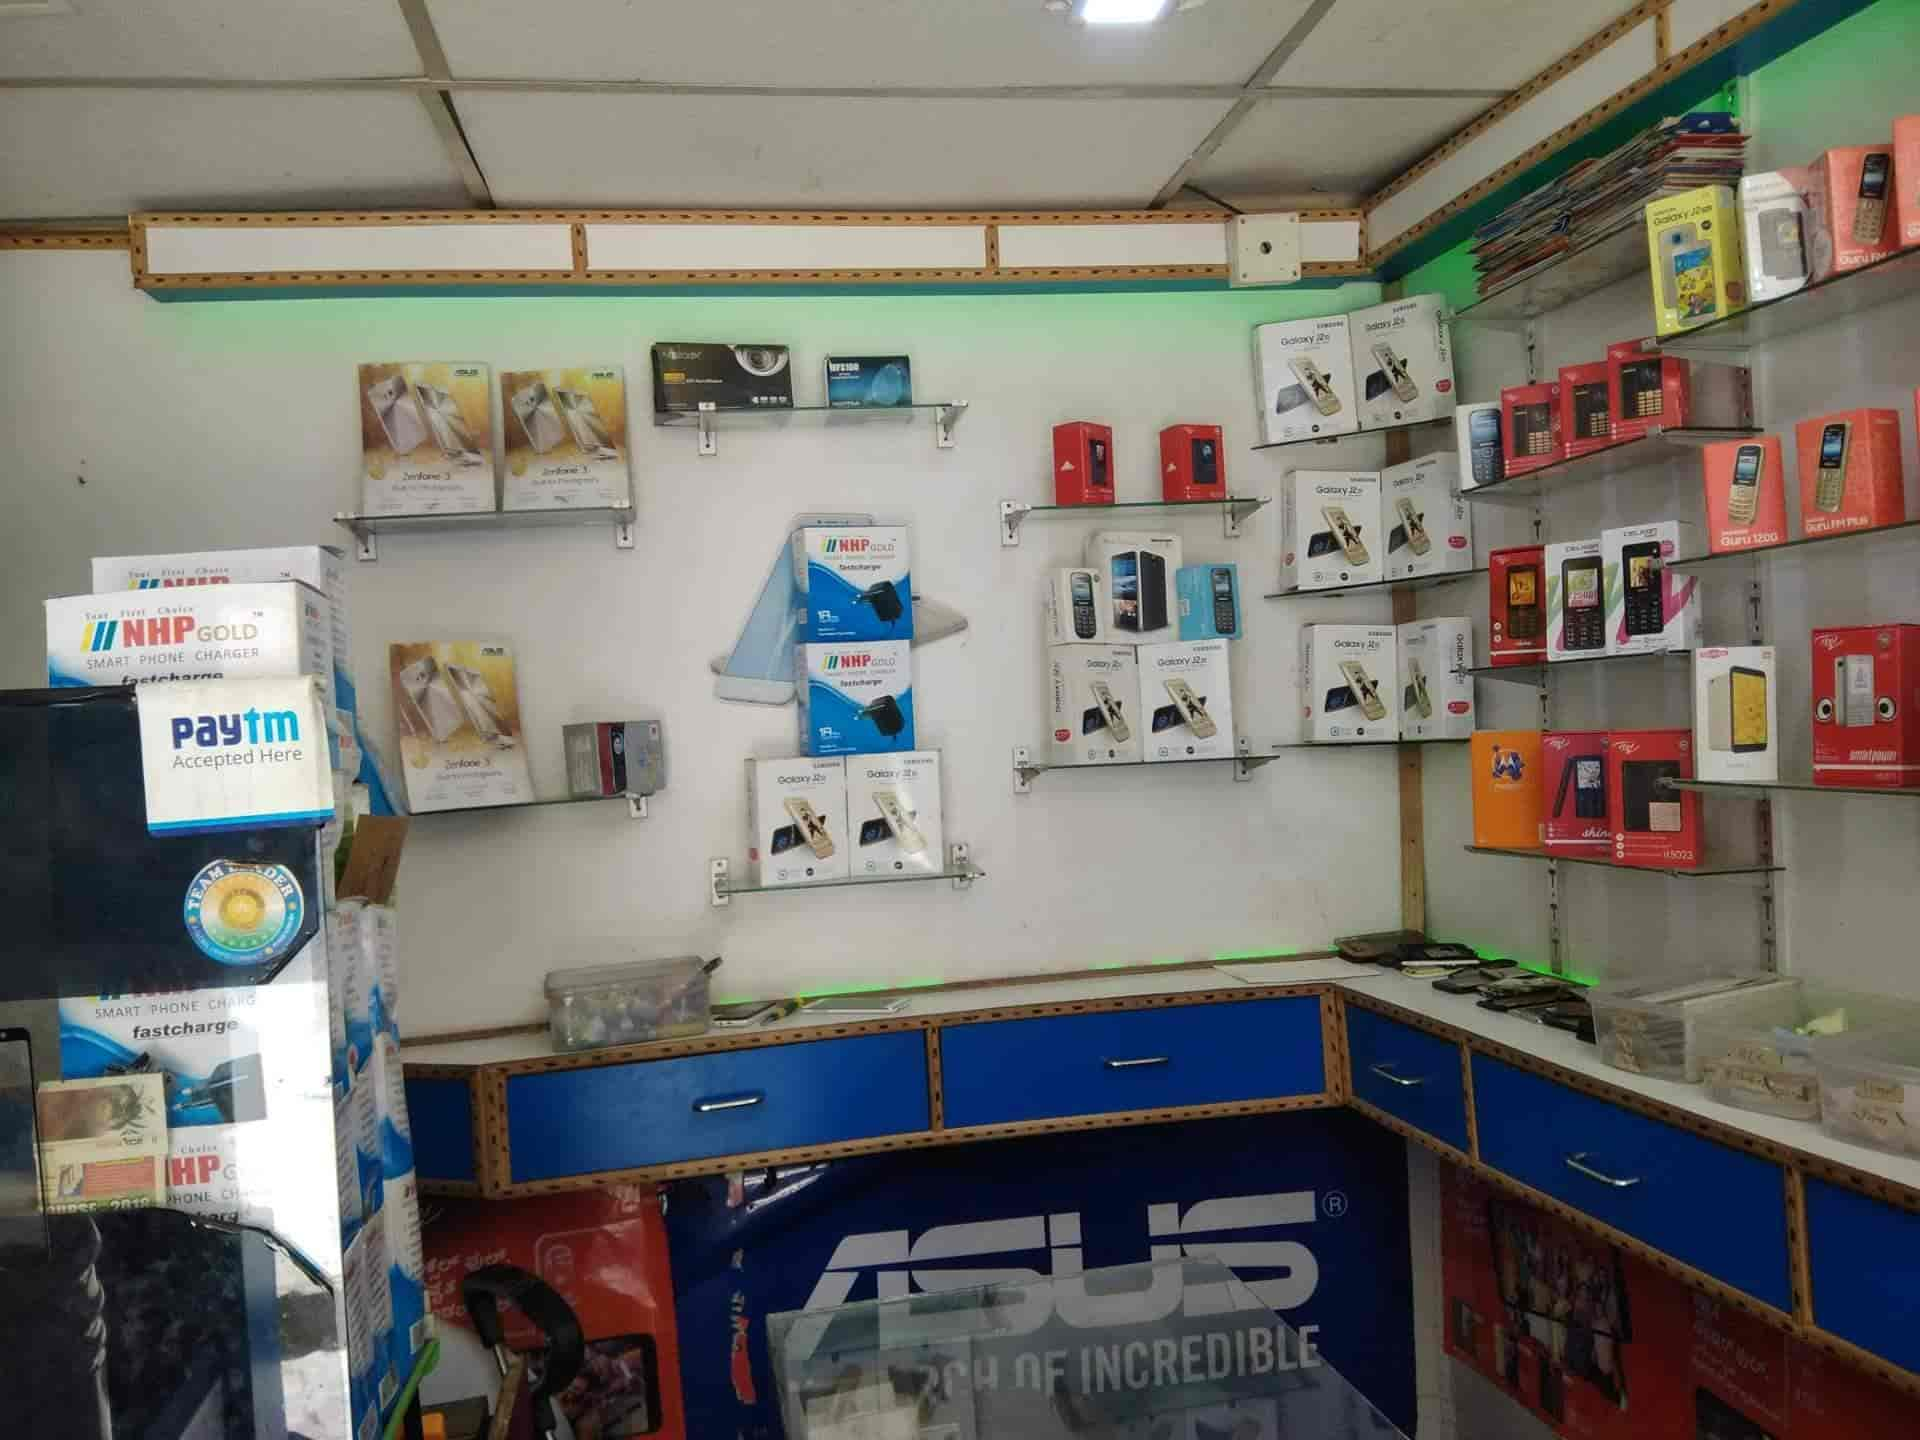 Android shop Photos, Salagame Road, Hassan- Pictures & Images